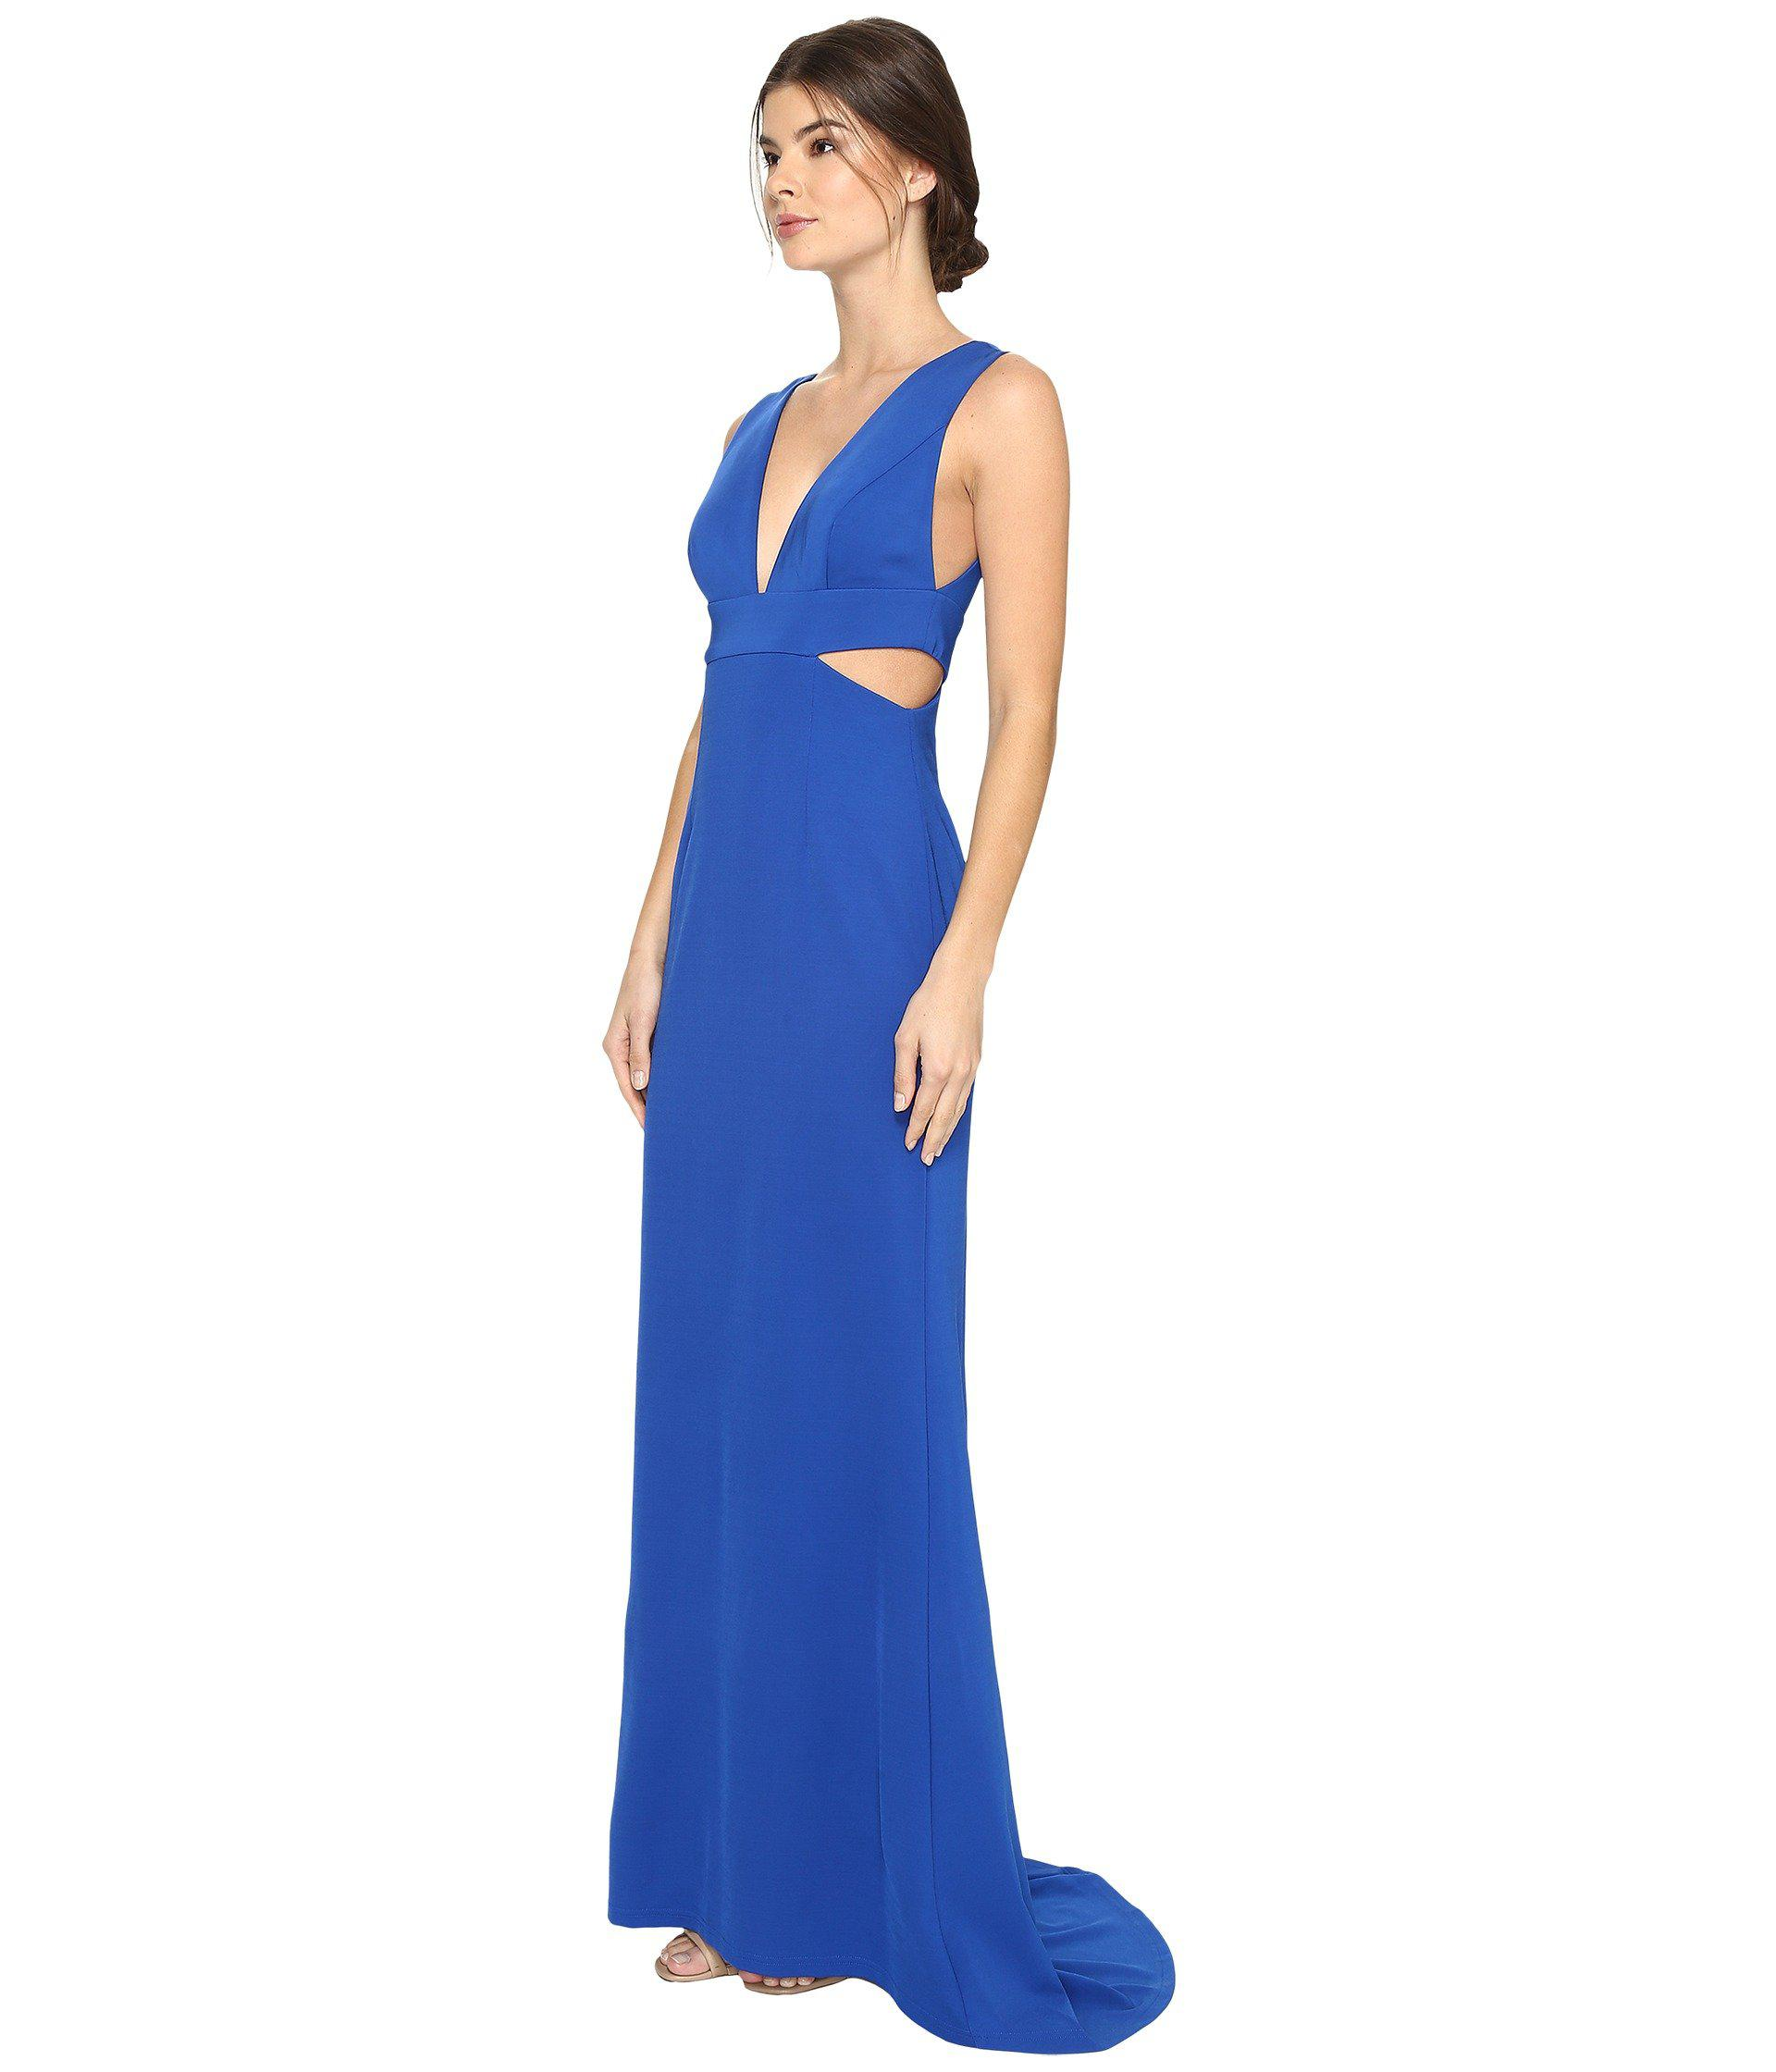 95eadcce94c Adrianna Papell Sleeveless Jersey Gown W/ Cutouts in Blue - Lyst